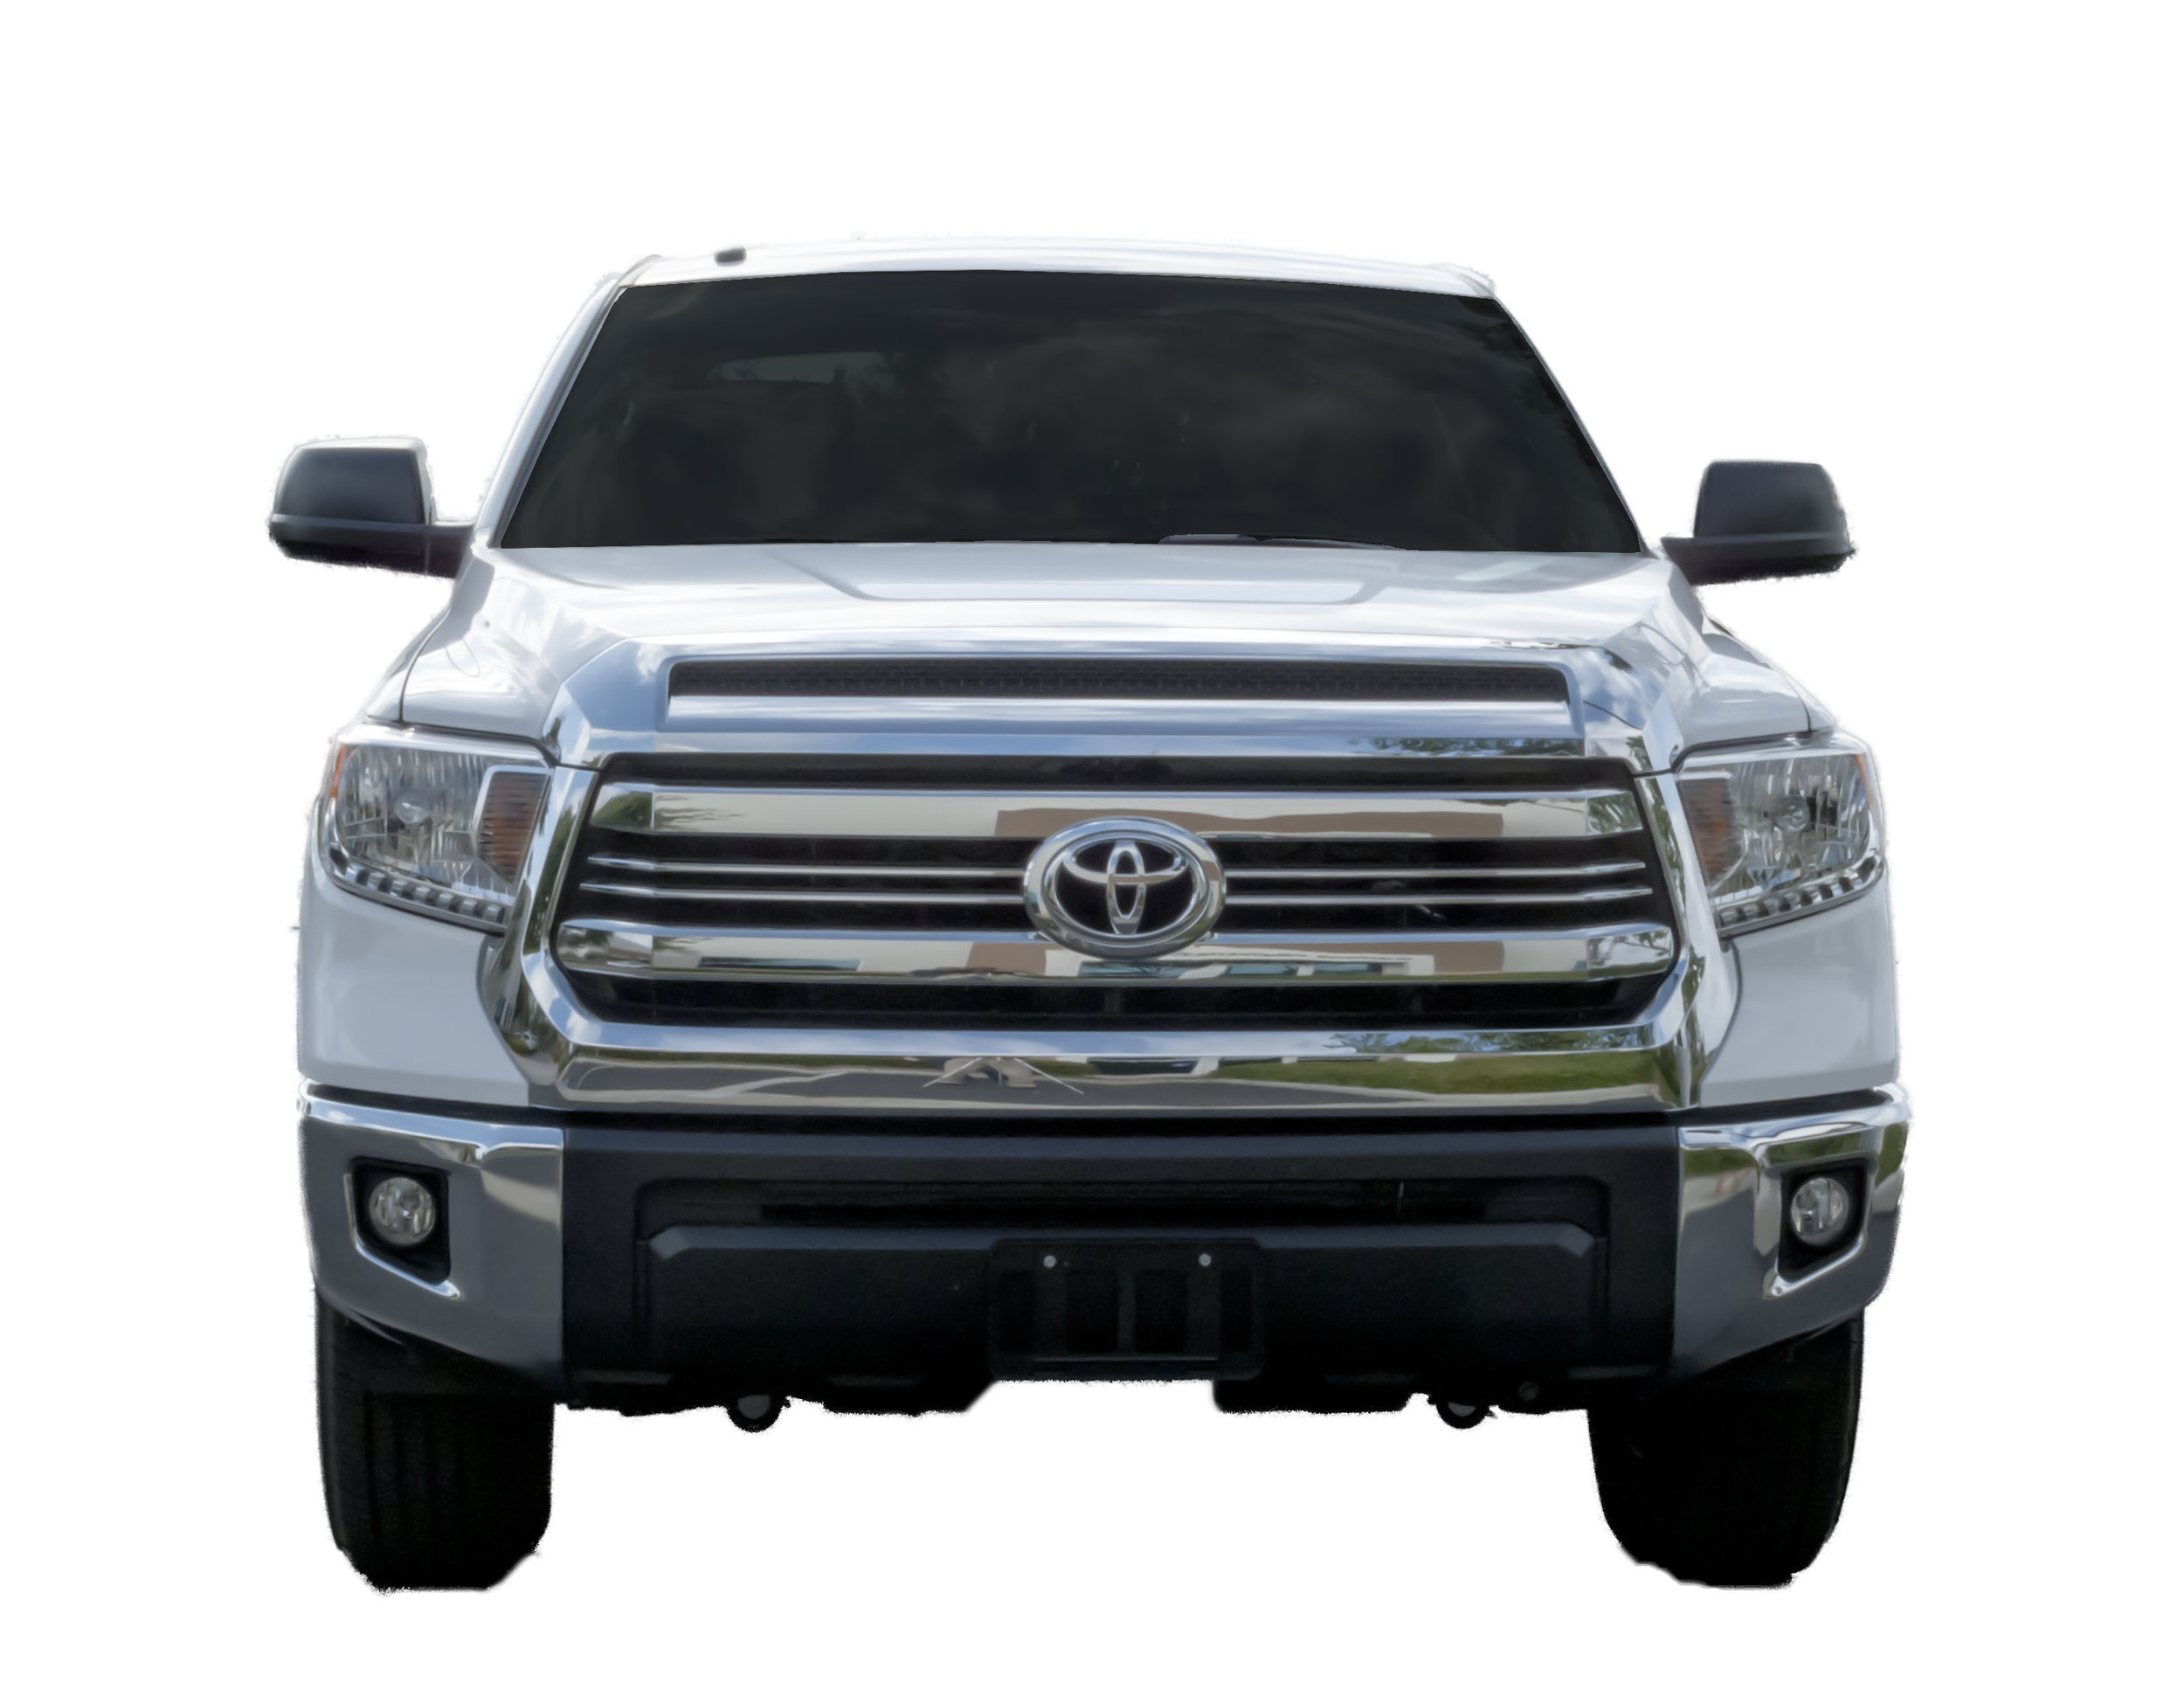 Roam And Board Tundra Front (1).jpg